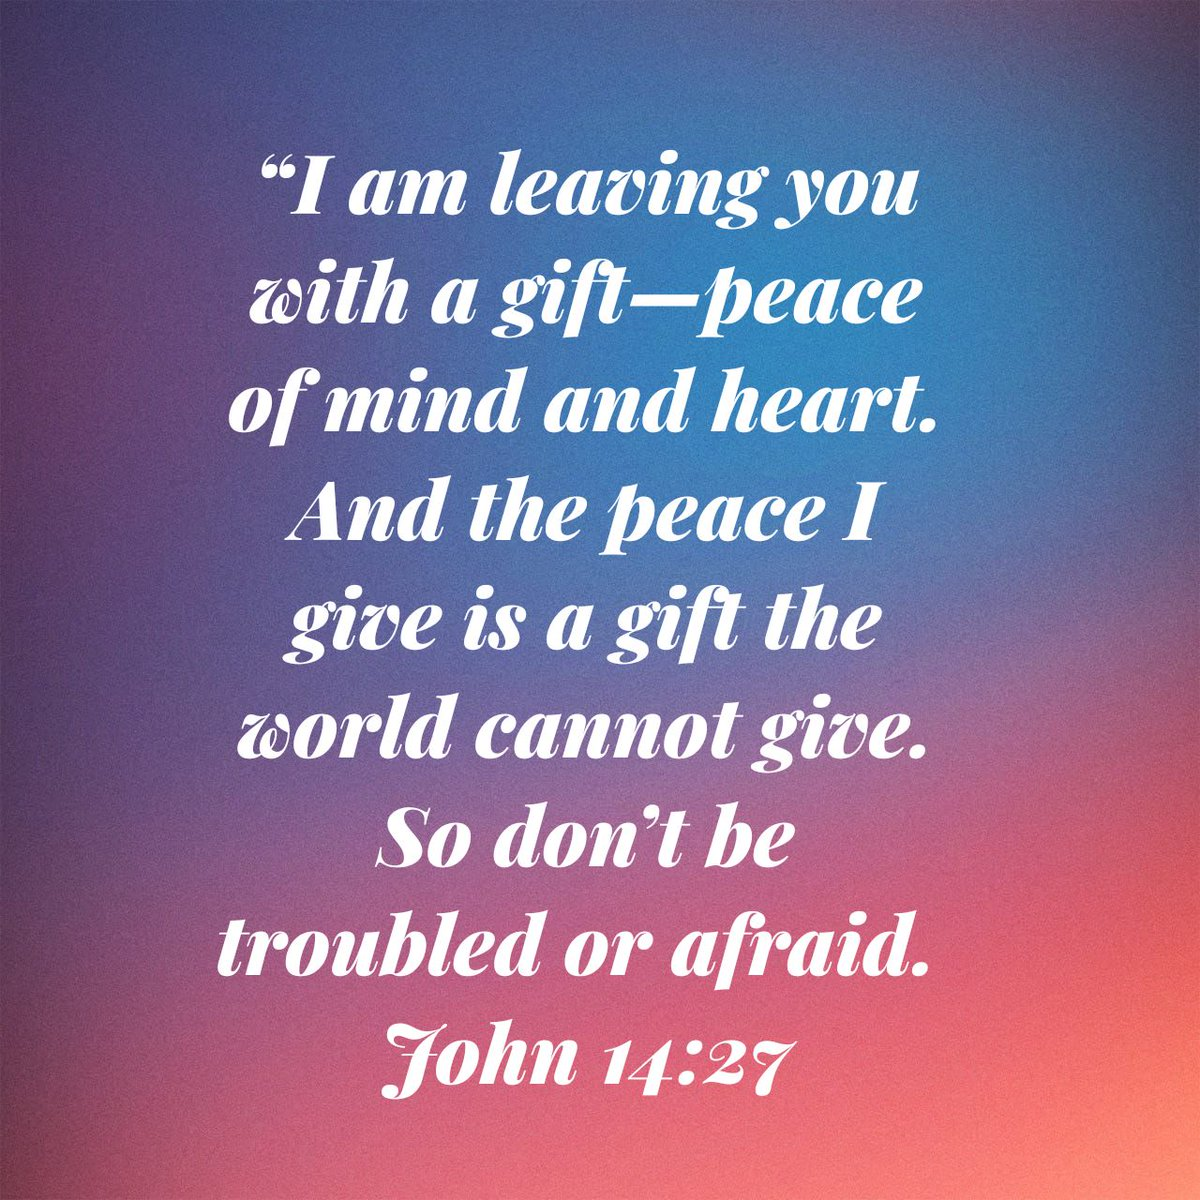 """""""I am leaving you with a gift—peace of mind and heart. And the peace I give is a gift the world cannot give. So don't be troubled or afraid. John 14:27 NLT  https://t.co/L3ix8weOKd https://t.co/gwiJDNKOvE"""